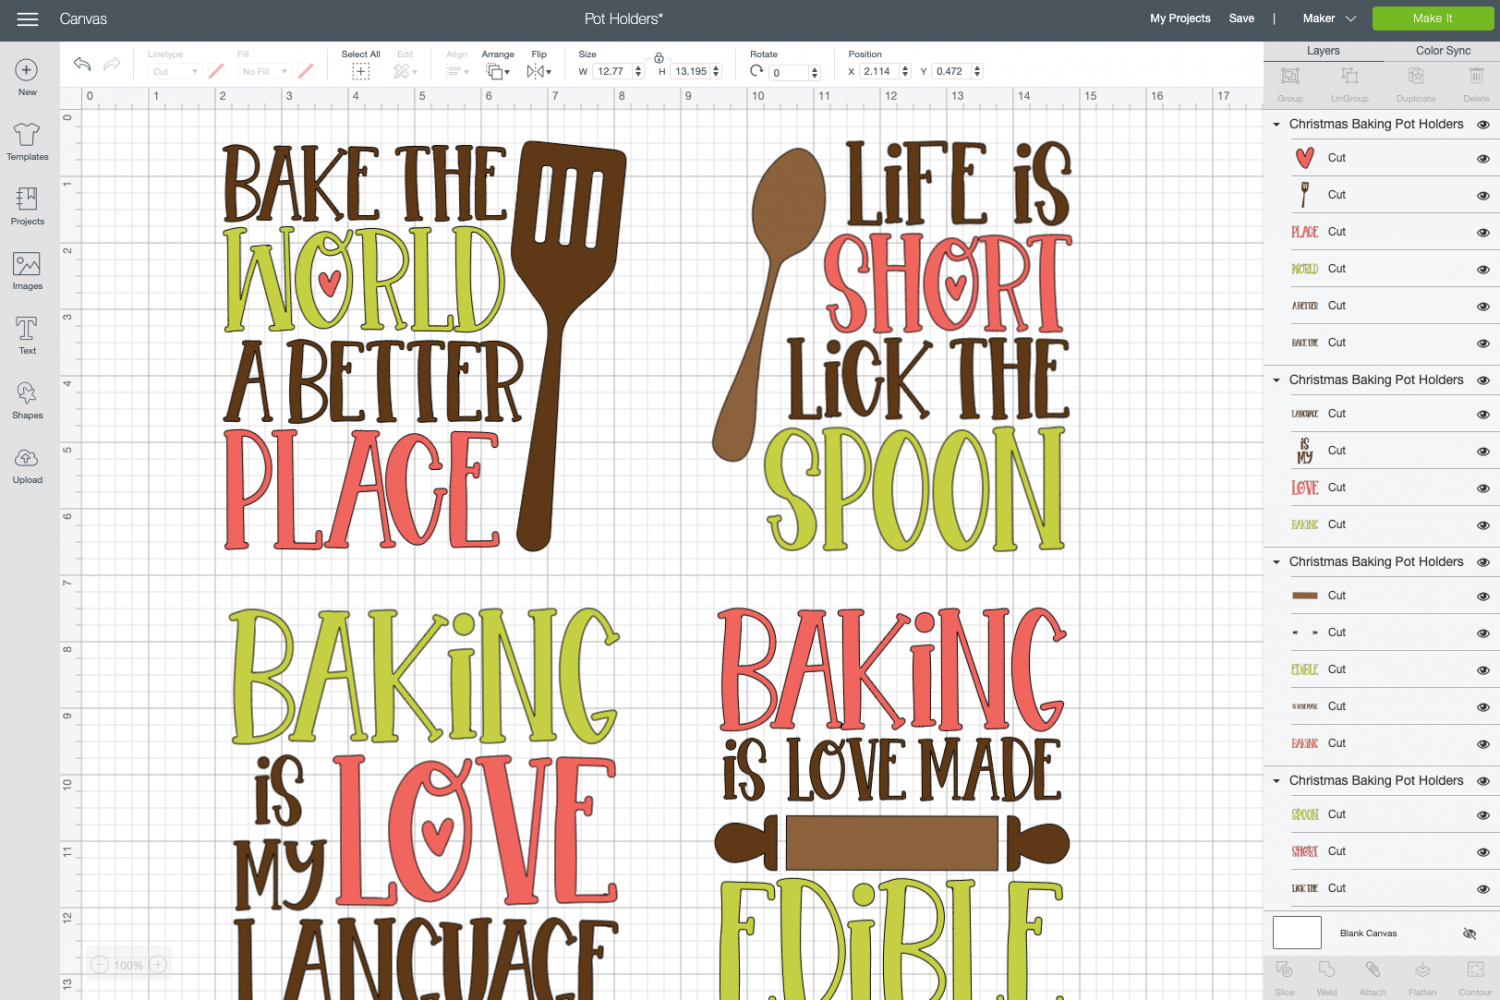 Cricut Design Space: Images ungrouped